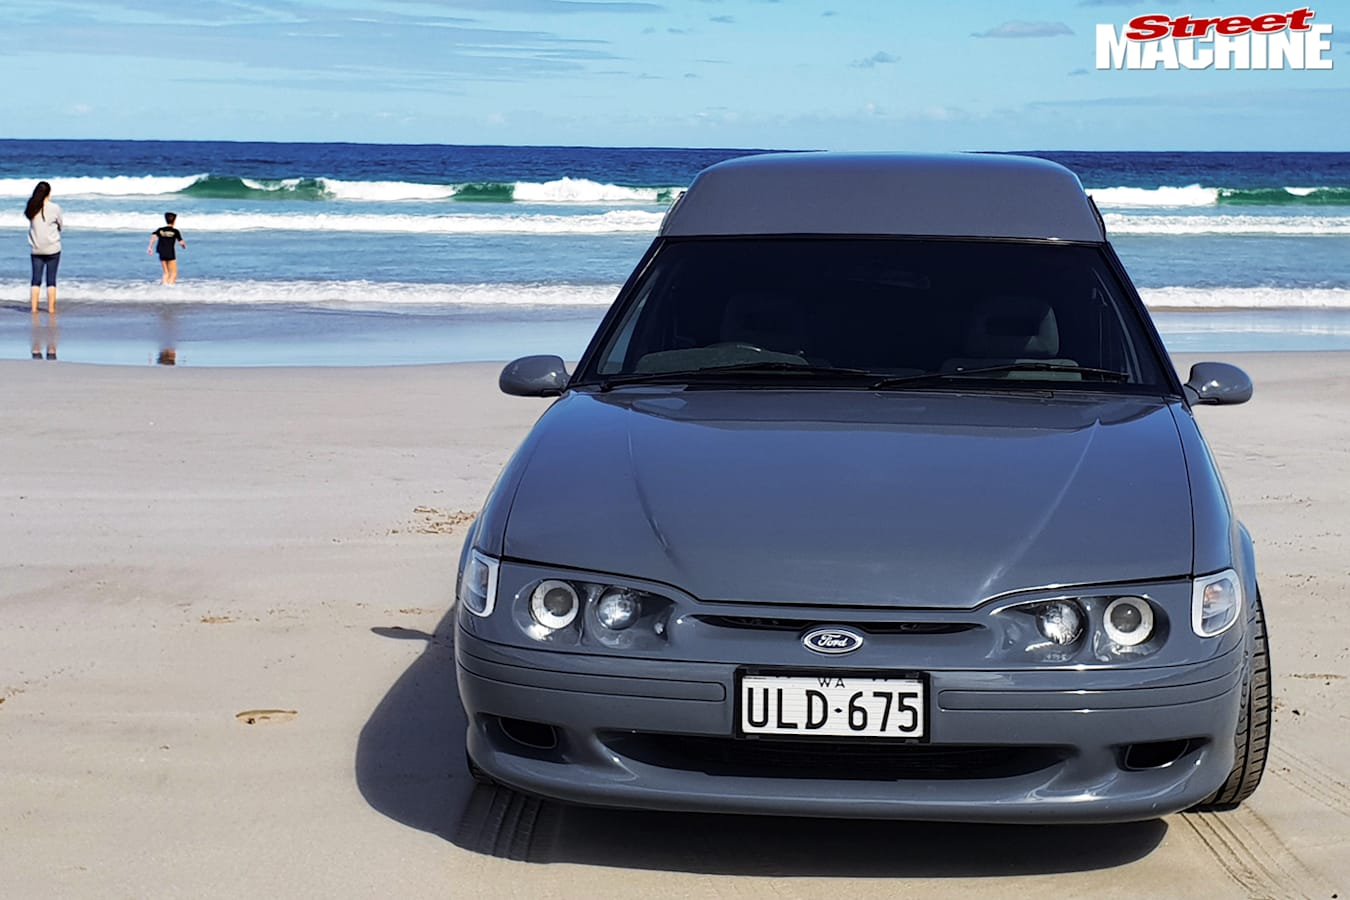 Street Machine Features Ford Xh Panel Van At The Beach